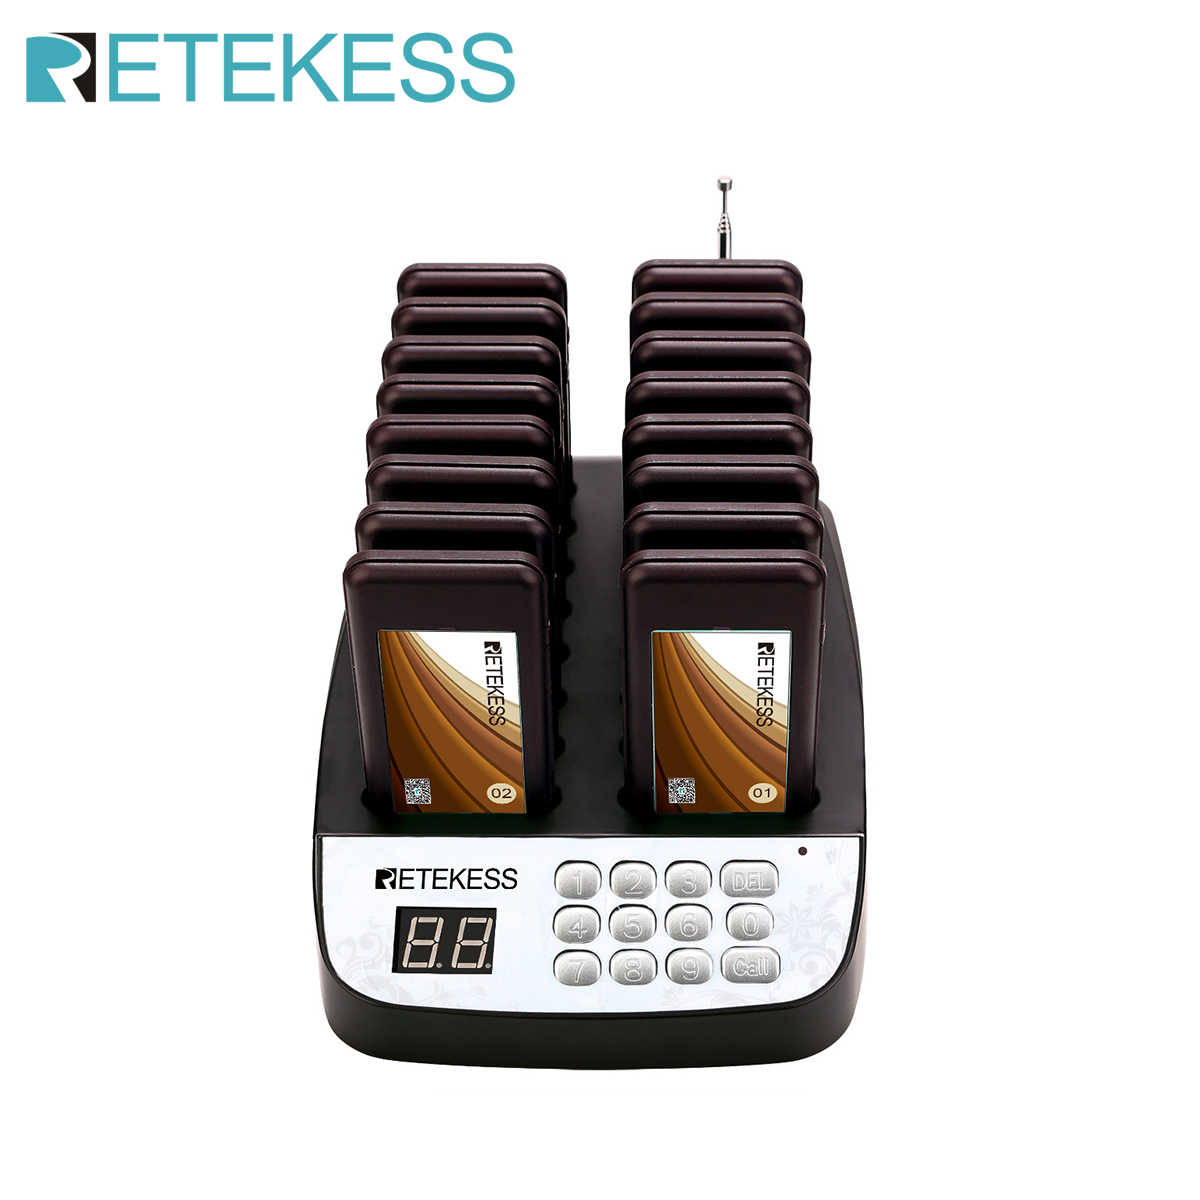 Retekess T113 Waterproof Restaurant pager Vibrator queuing system restaurant guest pagers for restaurant church fast food shop